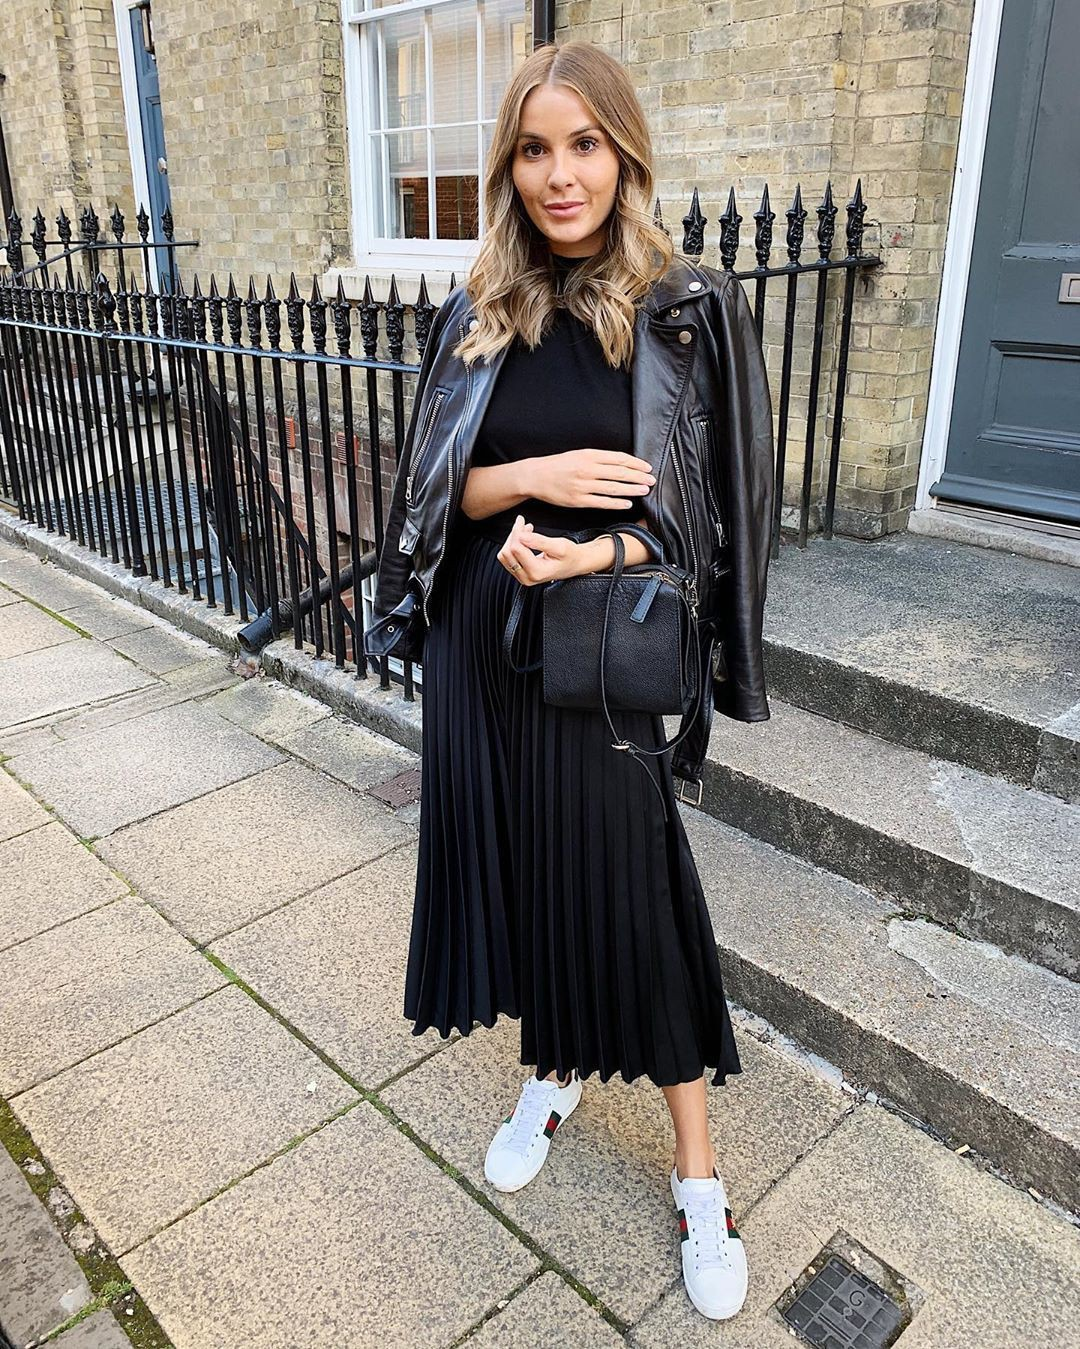 Black pleated skirt outfit, leather jacket, street fashion, crop top